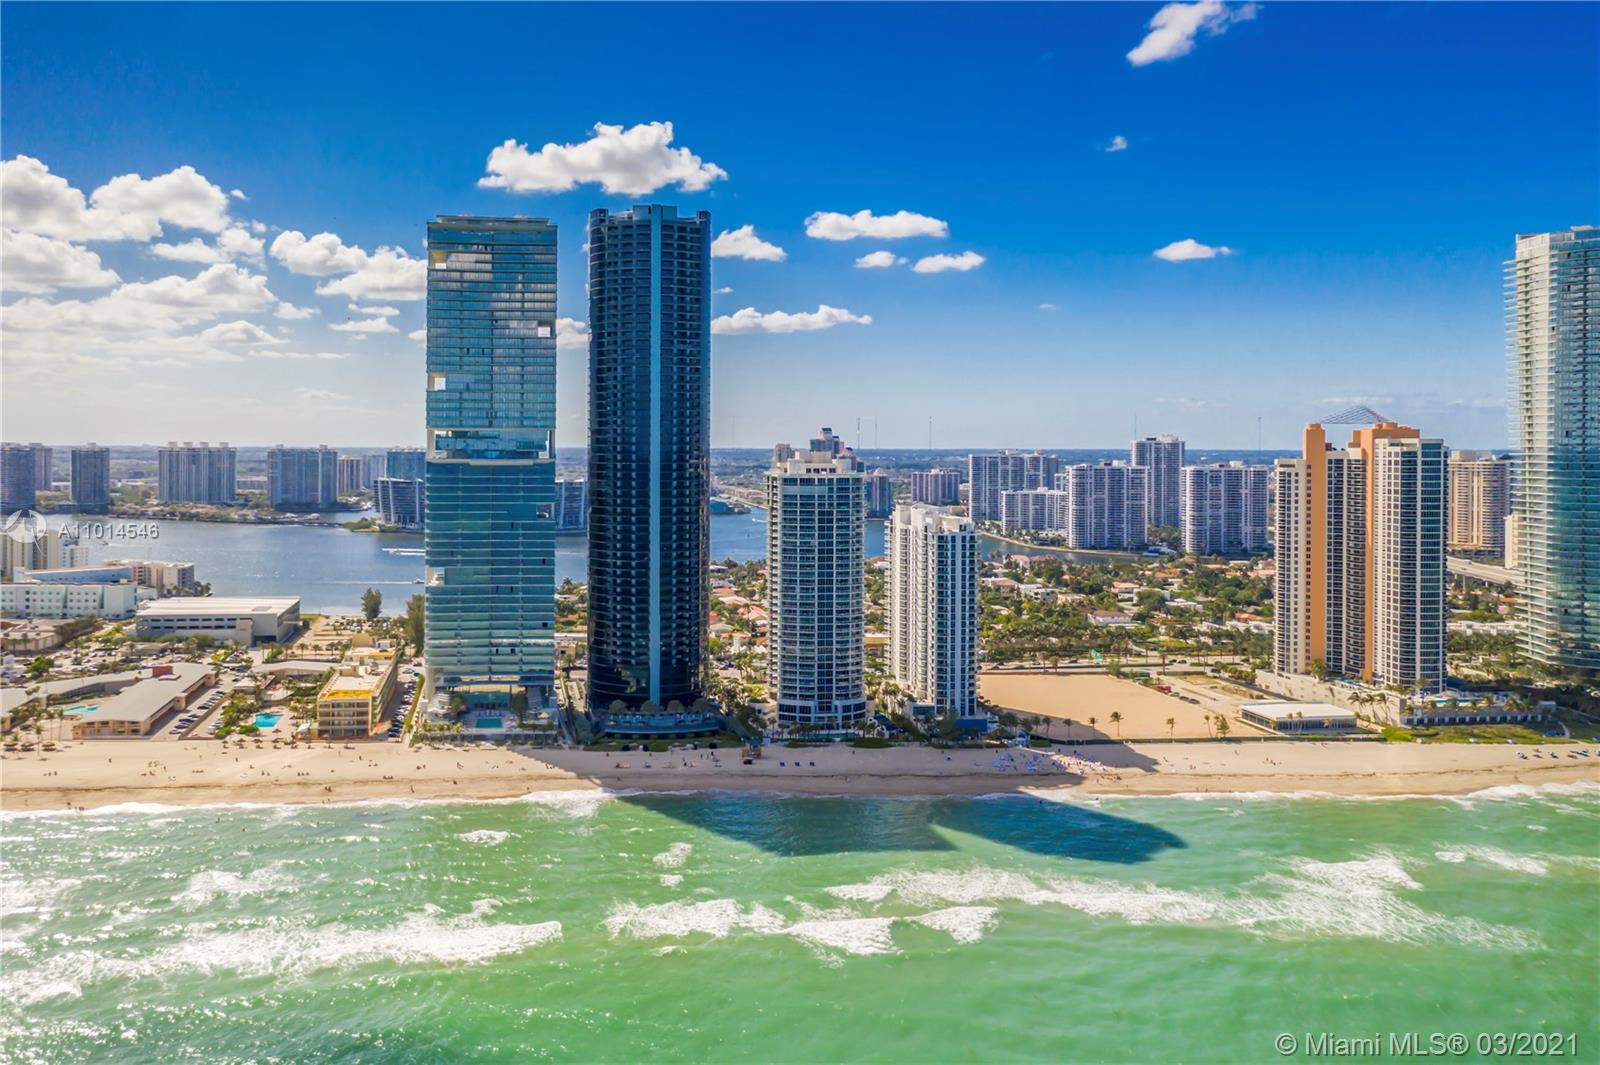 """This oceanfront unit in the prominent """"05"""" line at the Porsche Design Tower is a collector's dream. The 20th-floor unit with an unrivaled car elevator and windowed two-car garage is a 3-bedroom, 4.5-bathroom move-in-ready home boasting Volaka marble flooring, Poggenpohl kitchen with SS Miele appliances, and bathrooms with Dornbracht fixtures and Toto Neorest toilets. Additional details: heated balcony pool, floor to ceiling impact windows, separate laundry and garbage room with service bathroom, and living room fireplace. Building amenities include: private restaurant and bar, billiards, movie theater, golf and auto racing simulators, state-of-the-art gym and spa with steam, sauna, ice therapy, yoga and massage rooms. Hair salon offers manicure and pedicure services, upon request."""